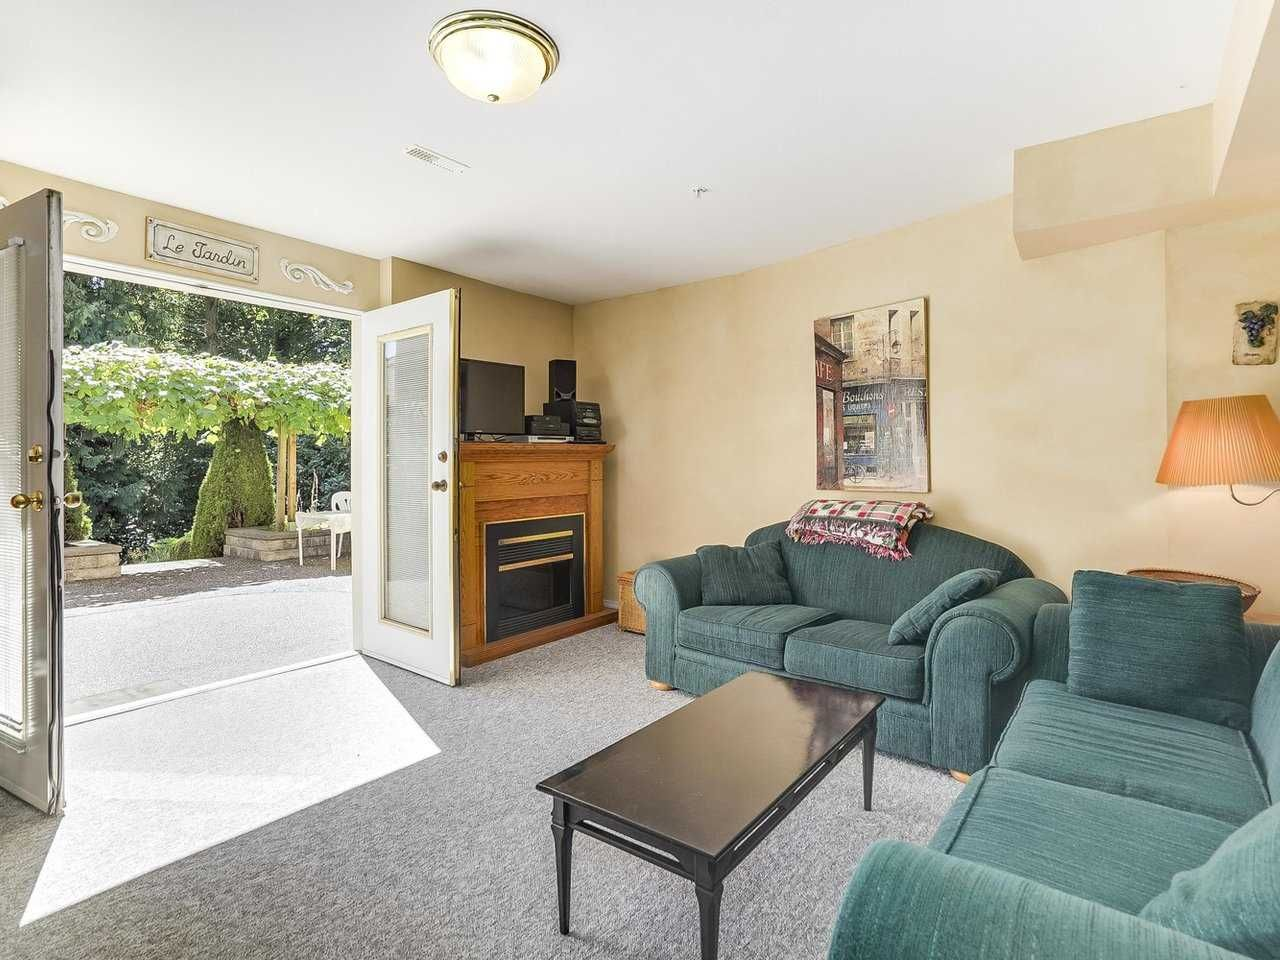 Photo 15: Photos: 1788 GORDON Avenue in West Vancouver: Ambleside House for sale : MLS®# R2207715